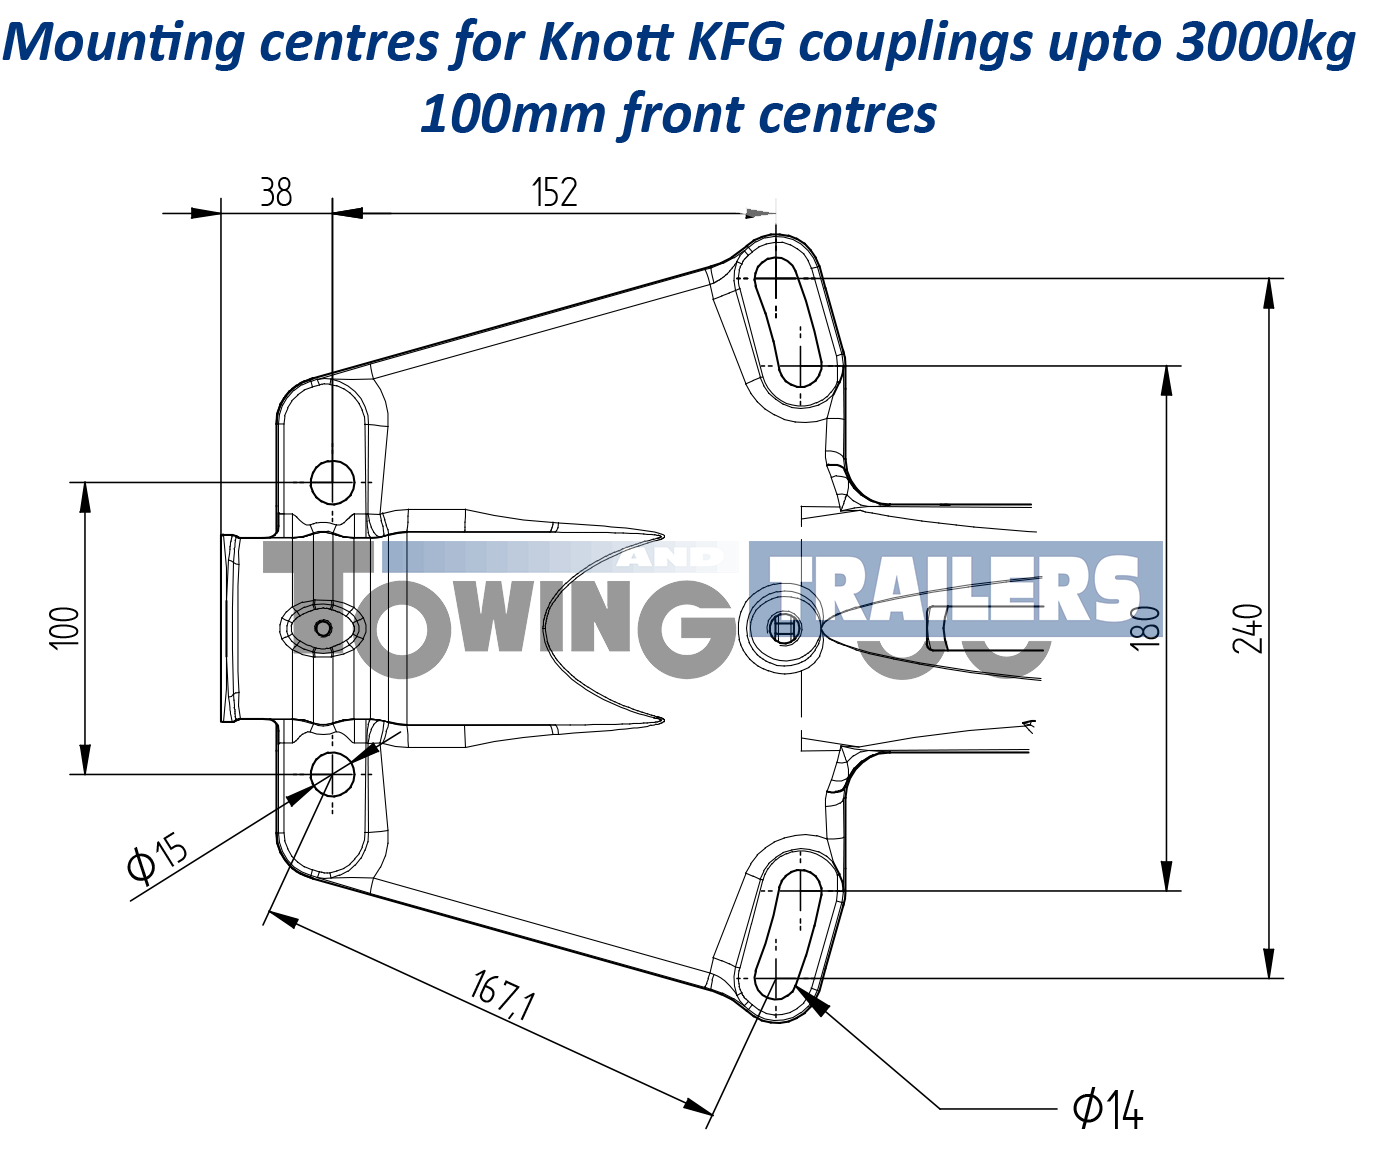 Knott Kfg27 Trailer Coupling Cast Hitch 2700kg For A Frame Used On Coupler Diagram Mounting Dimensions